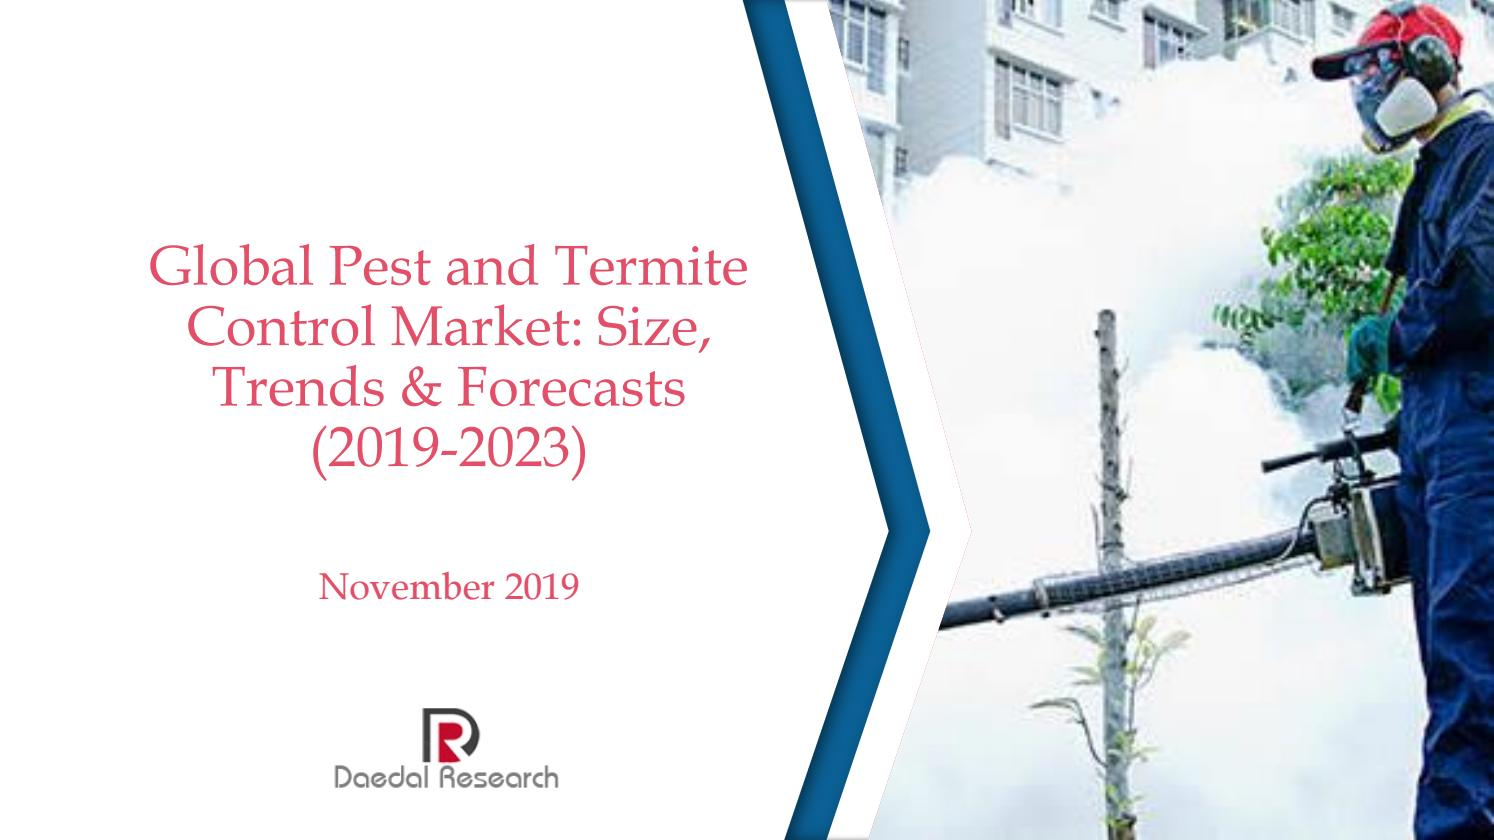 Global Pest And Termite Control Market Size Trends And Forecasts 2019 2023 By Daedal Research Issuu